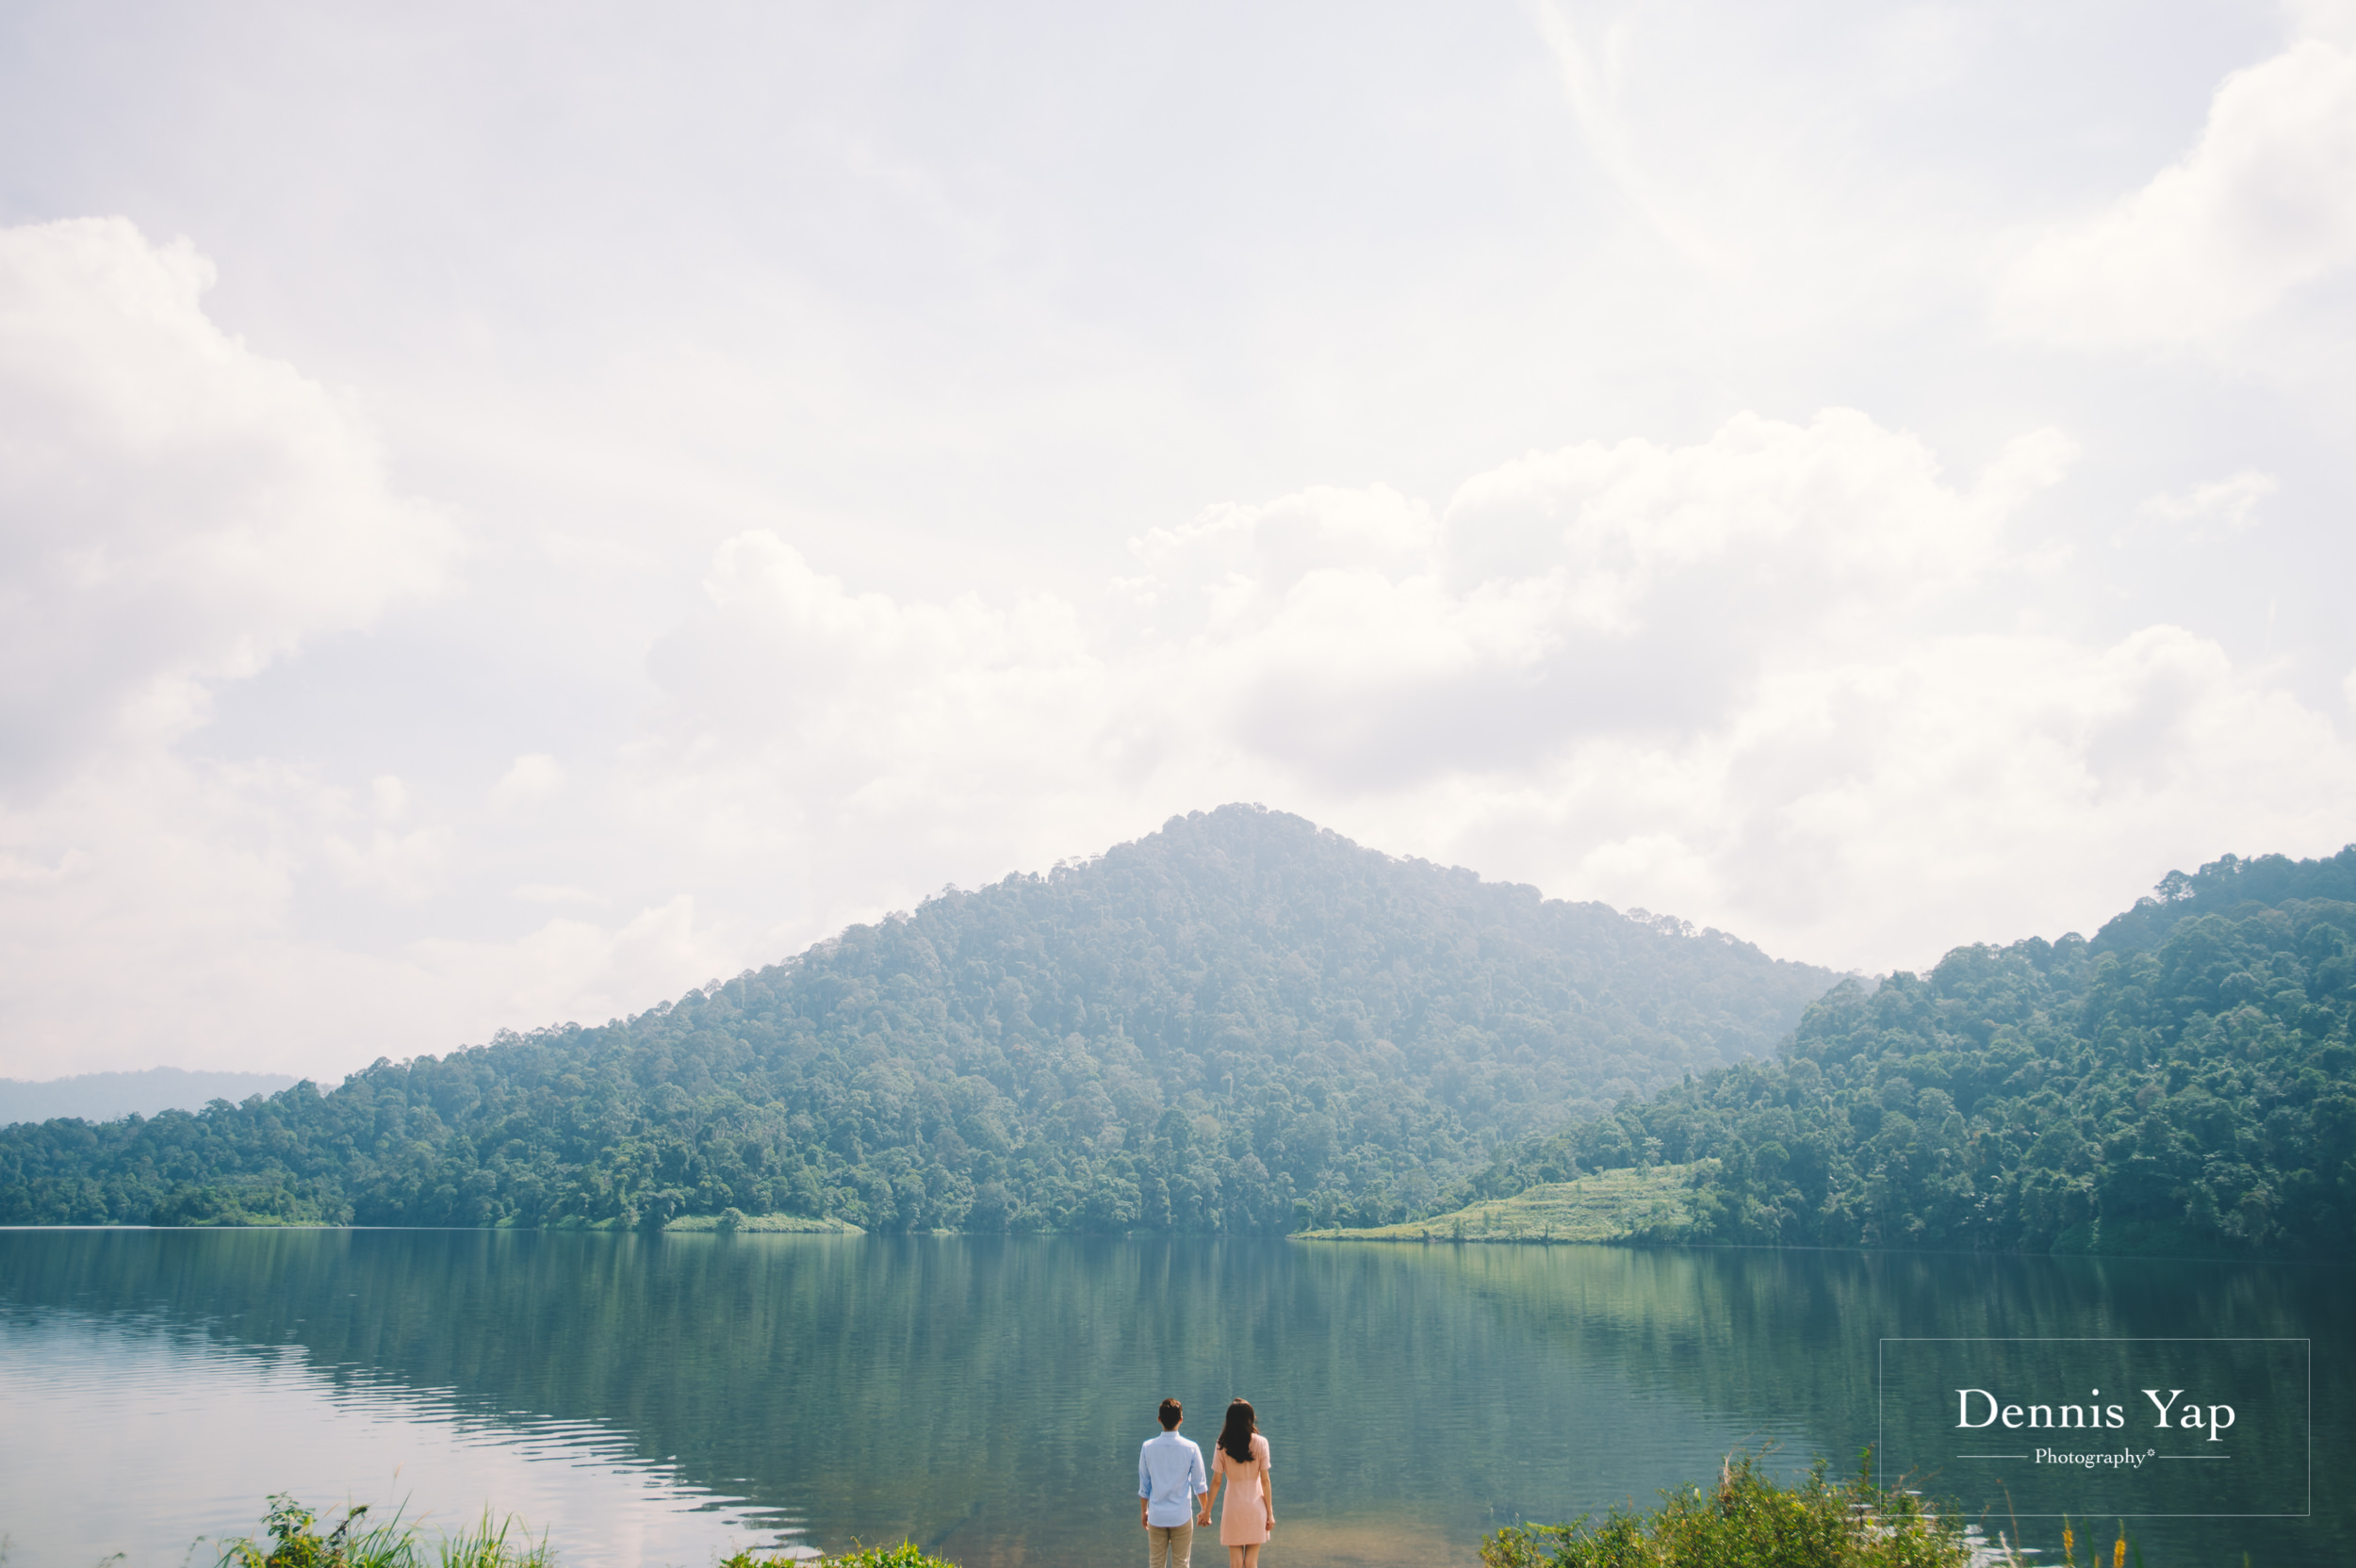 steven ching pre wedding hulu langat namwah road background beloved lookout point dennis yap photography malaysia top photographer-14.jpg